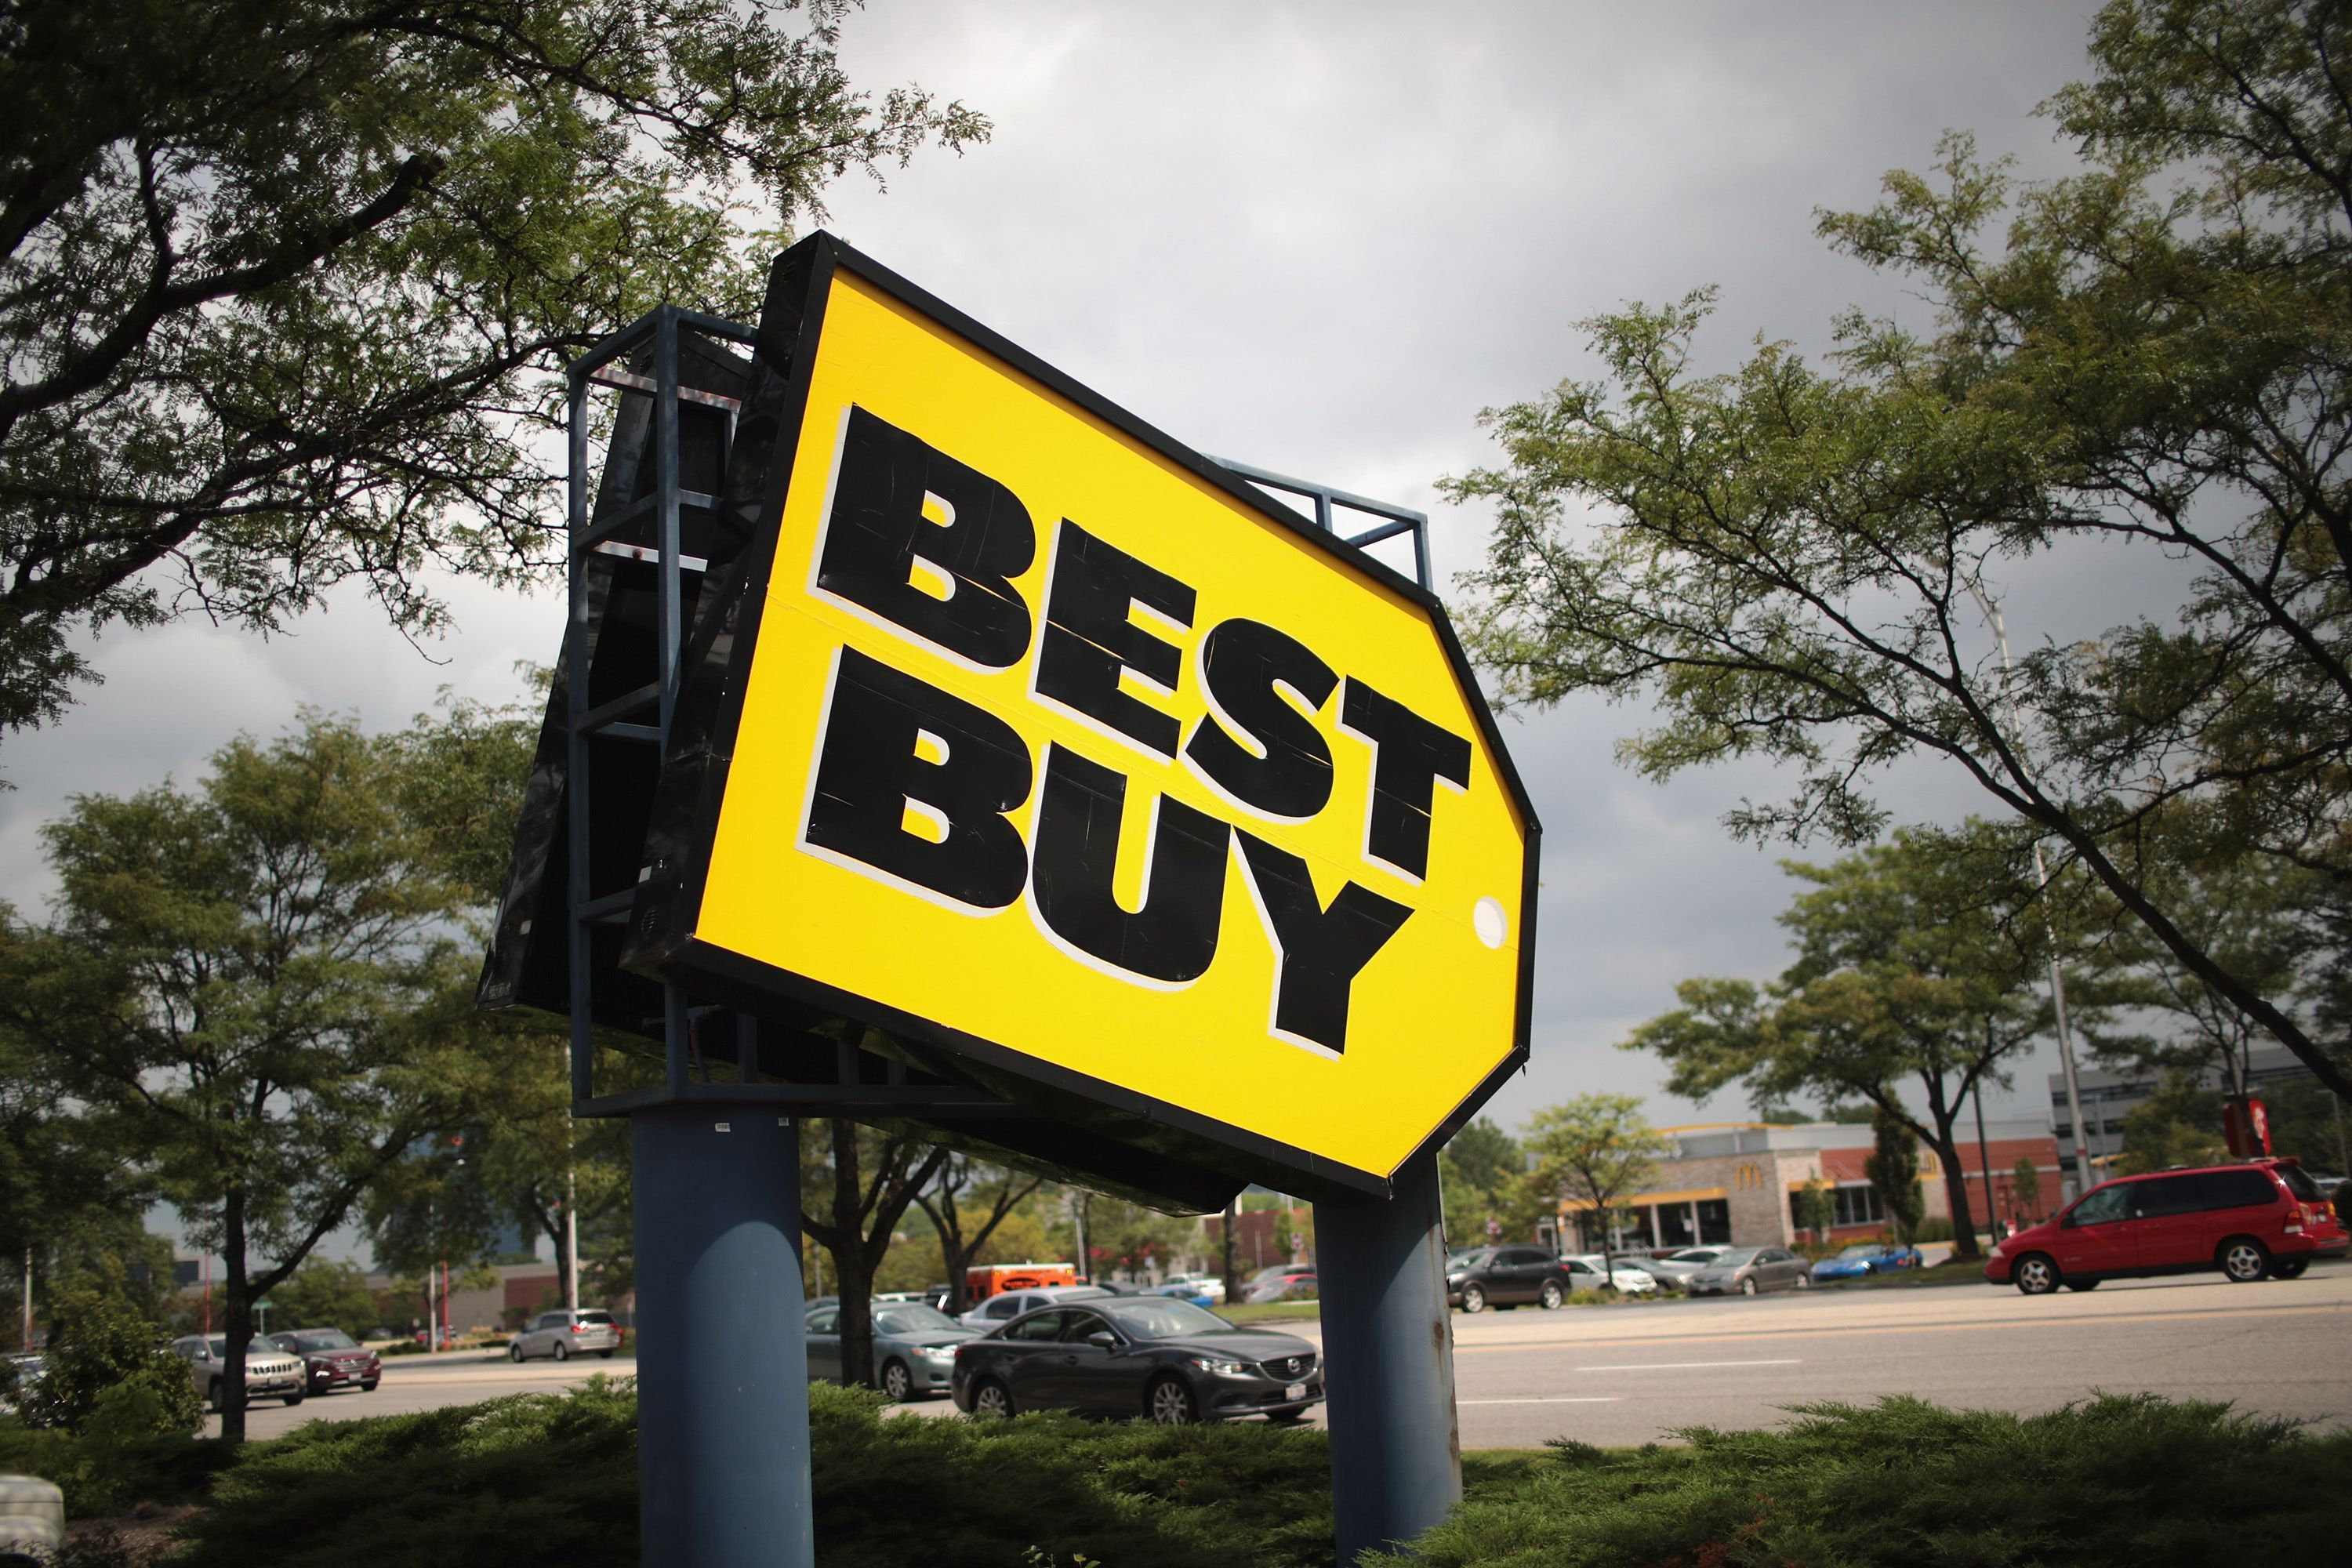 An image of the Best Buy sign.